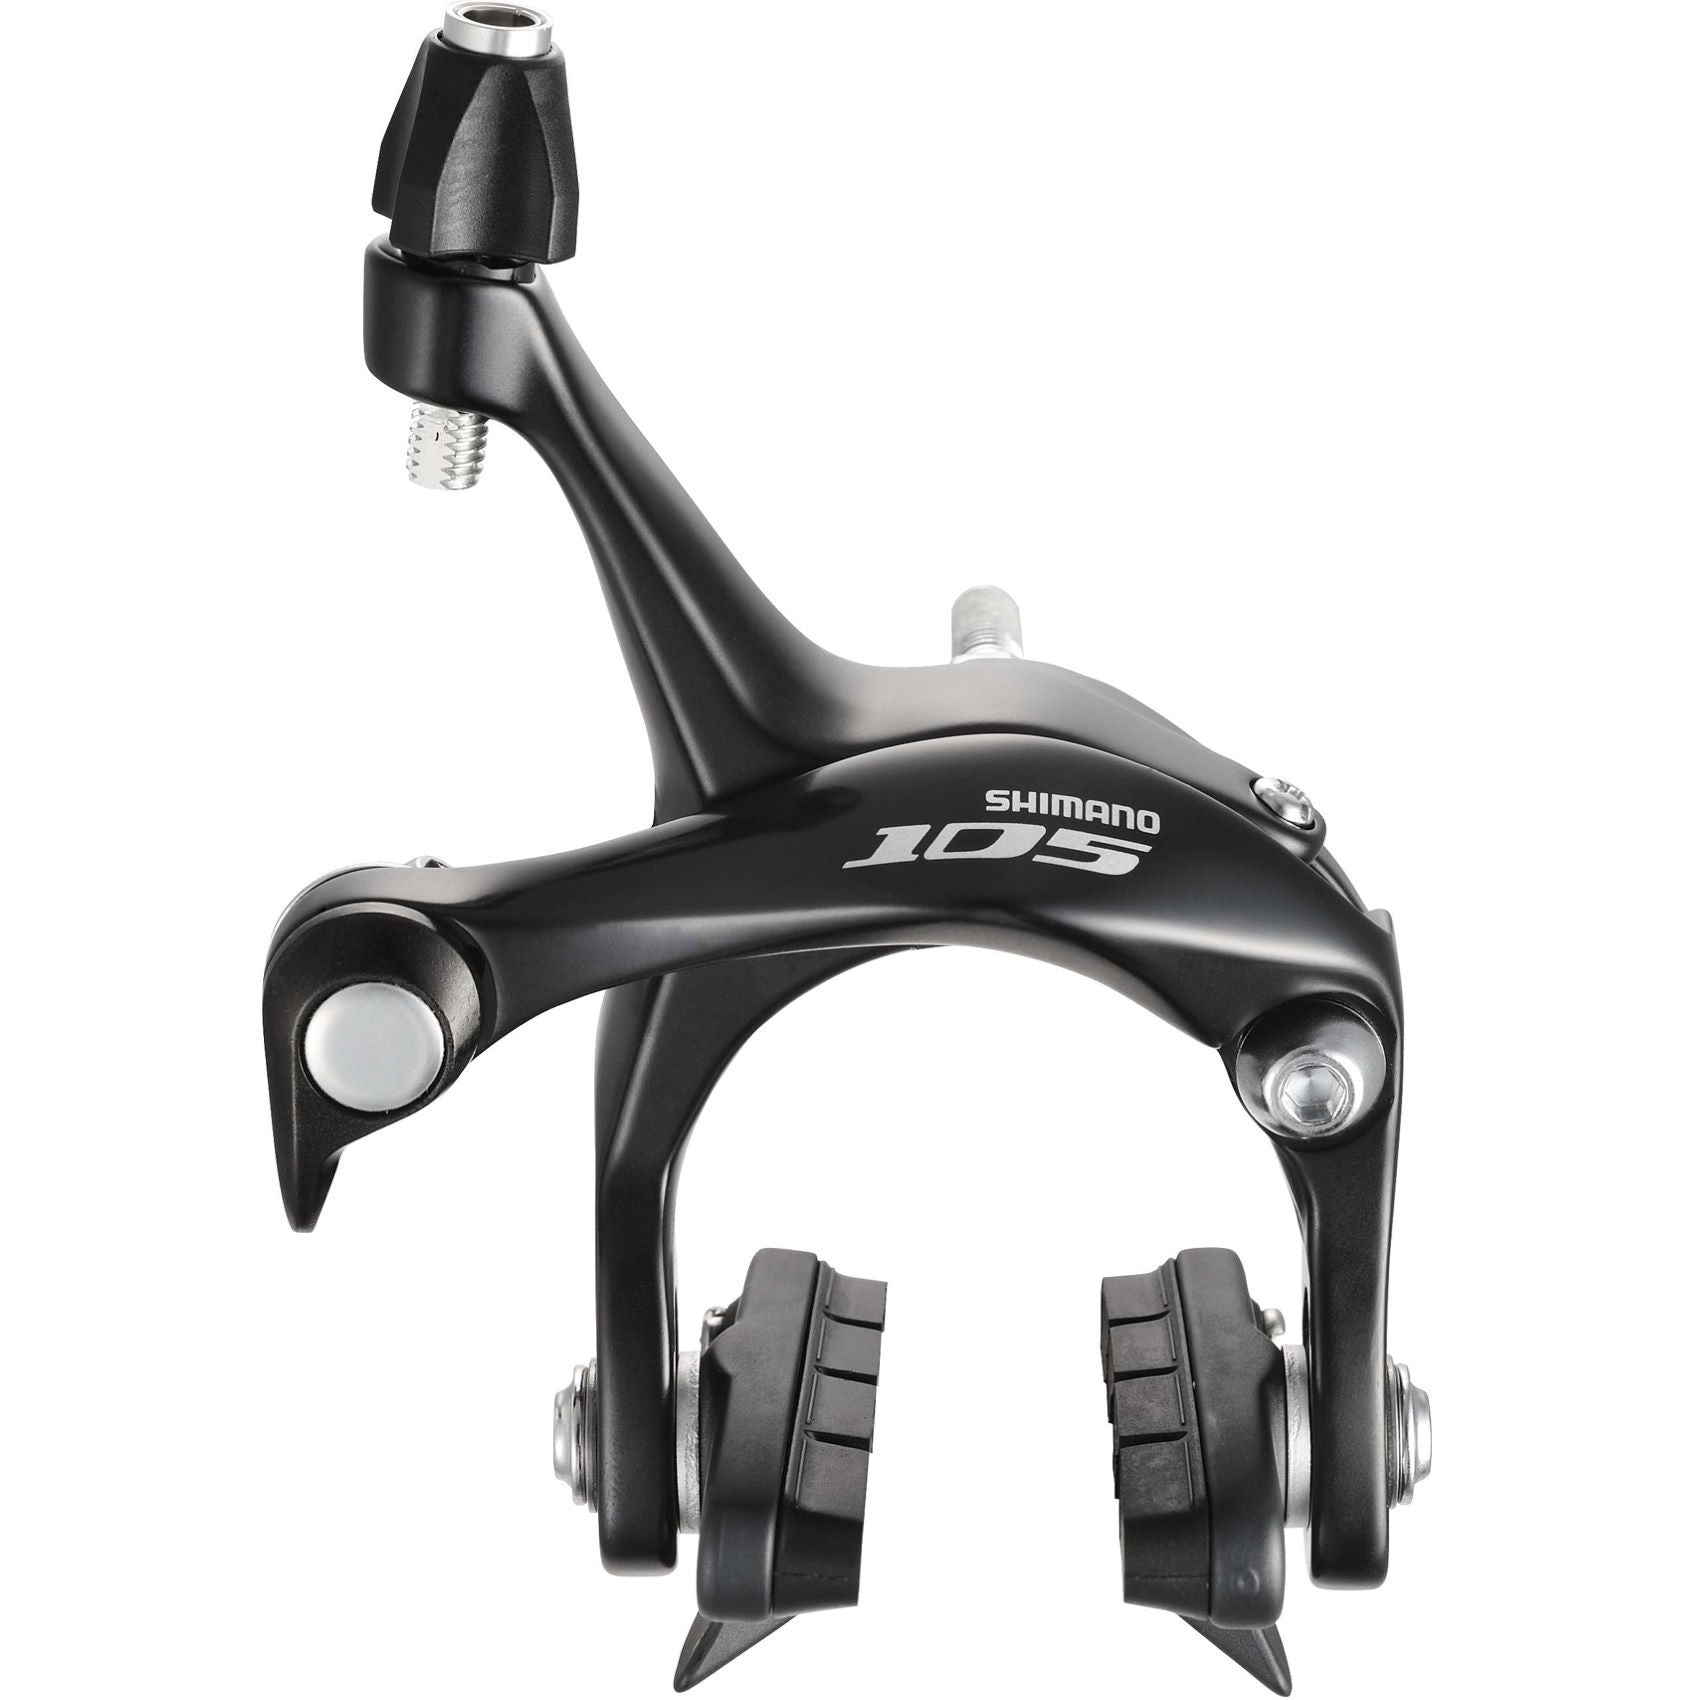 Shimano 105 5700 Rear Brake Caliper Slate Black - Racer Sportif